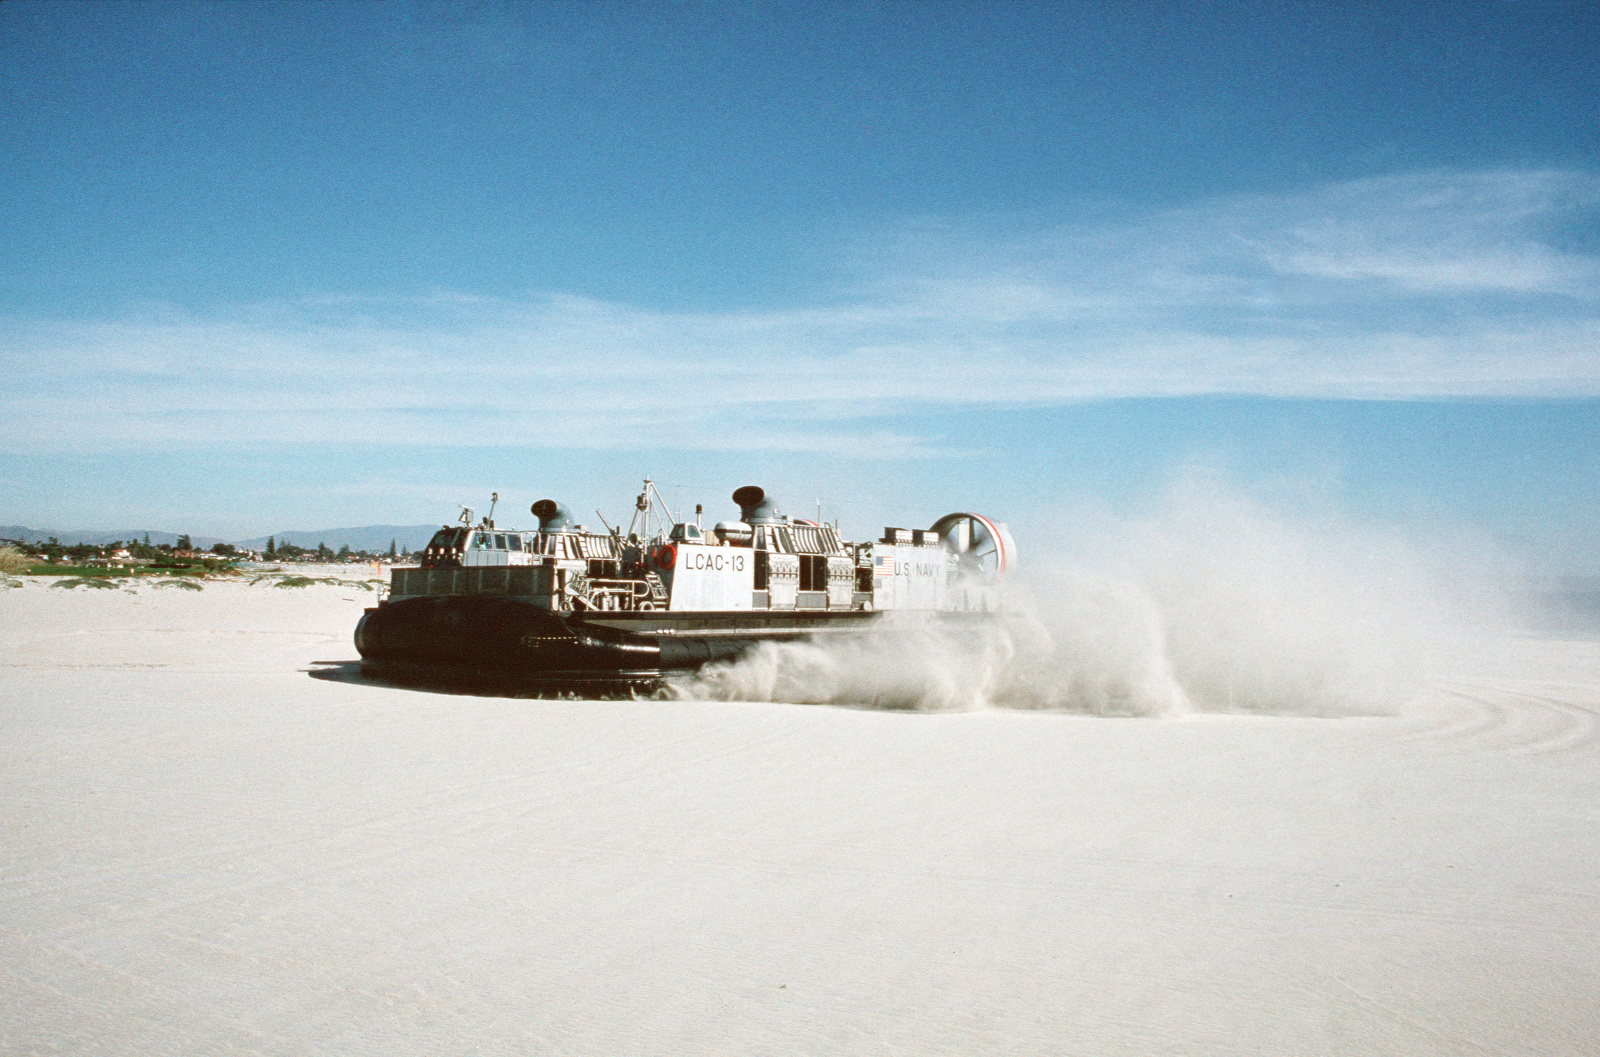 JOCS Theresa L. Dunn/PH1 Paul Pappas Naval Air Station, North Island, Calif....Trailed by a cloud of blown sand, the air cushion landing craft LCAC-13 moves up Breakers Beach during an amphibious warfare demonstration. OFFICIAL U.S. NAVY PHOTO (RELEASED)